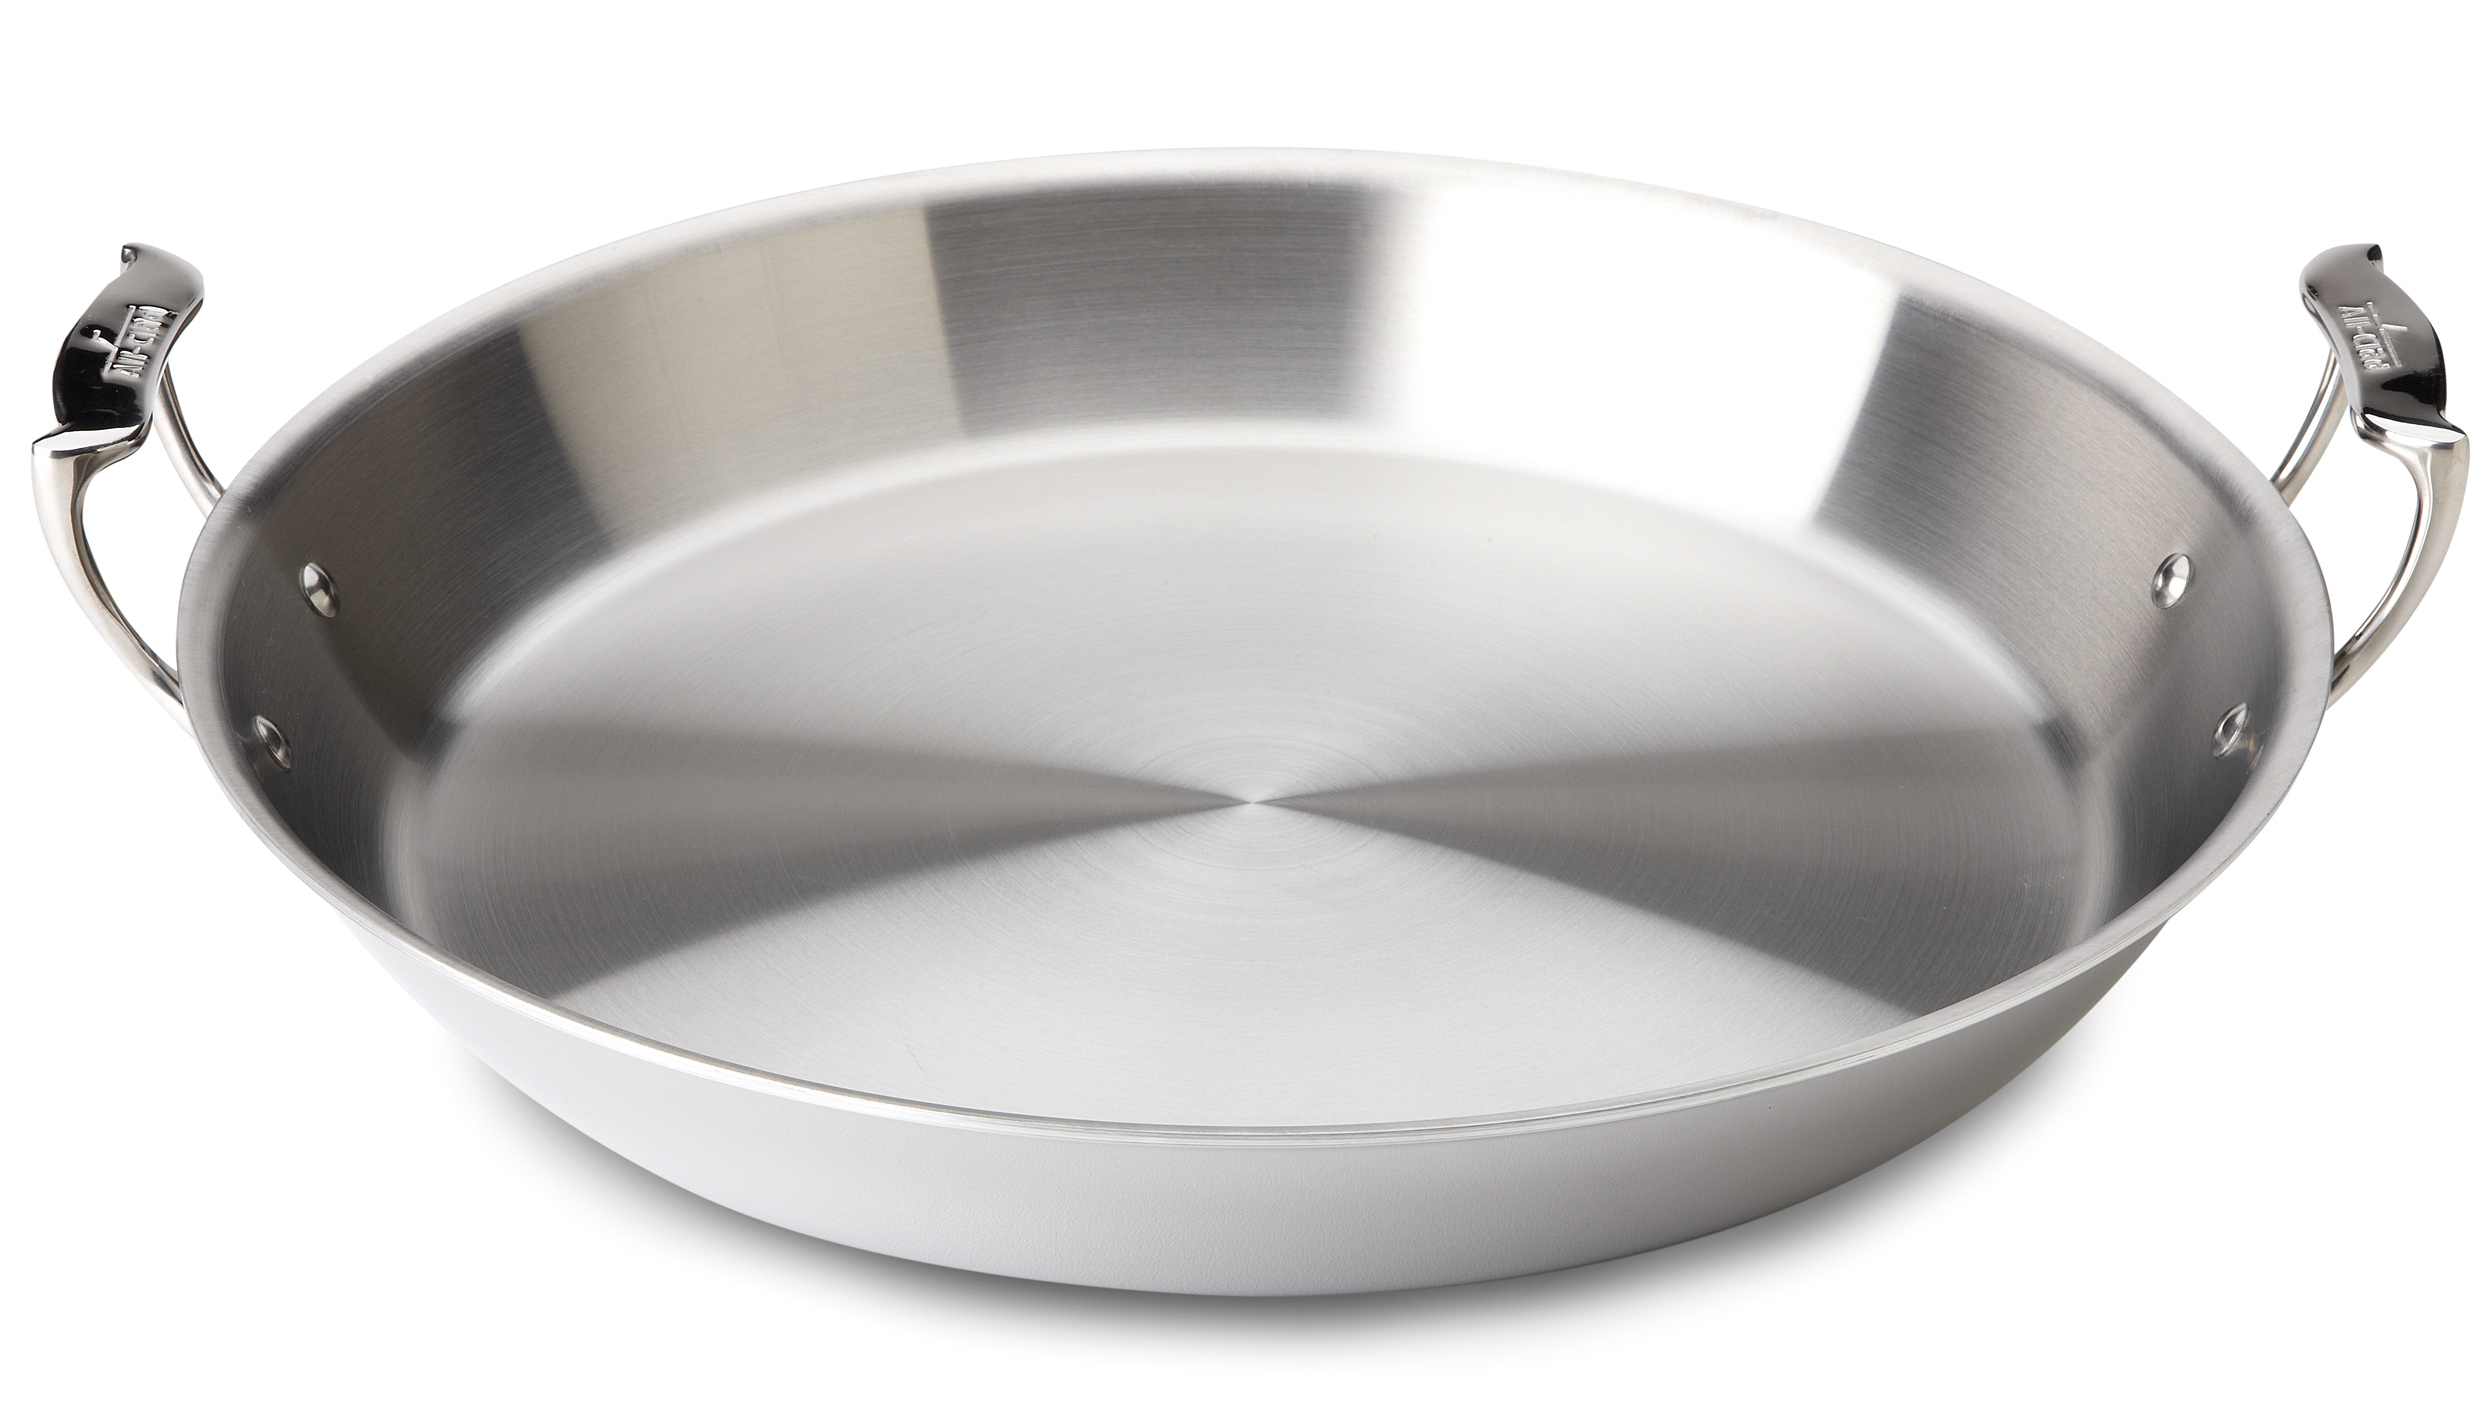 All-Clad Stainless Steel Paella Pan, 16 Inch